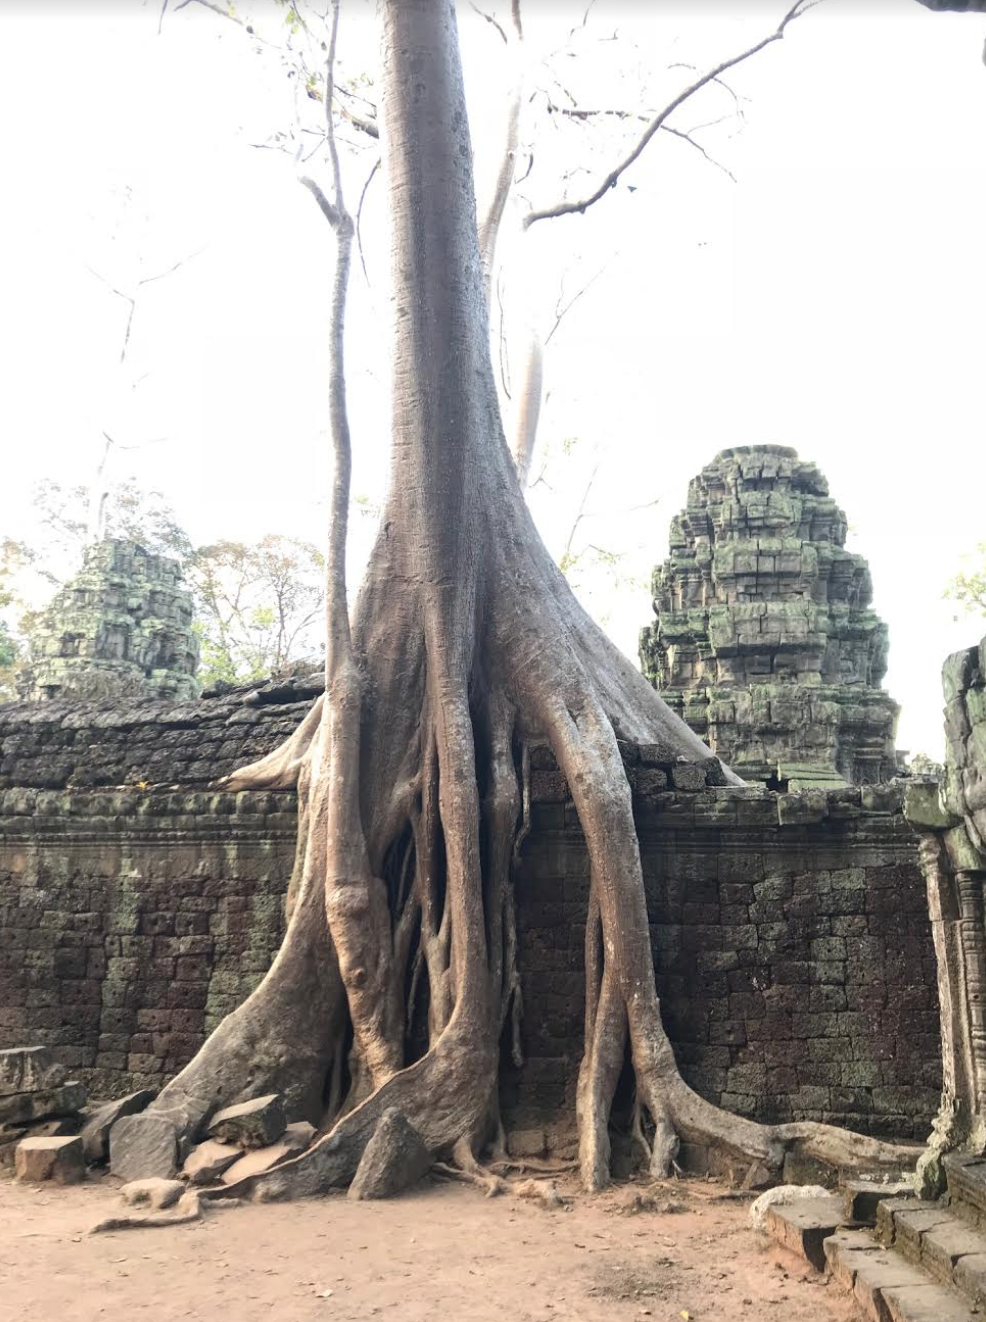 Tree roots: Angkorian builders utilized brick, sandstone, laterite and wood, but what remains is brick, sandstone and laterite, while the wooden elements have decayed overtime.